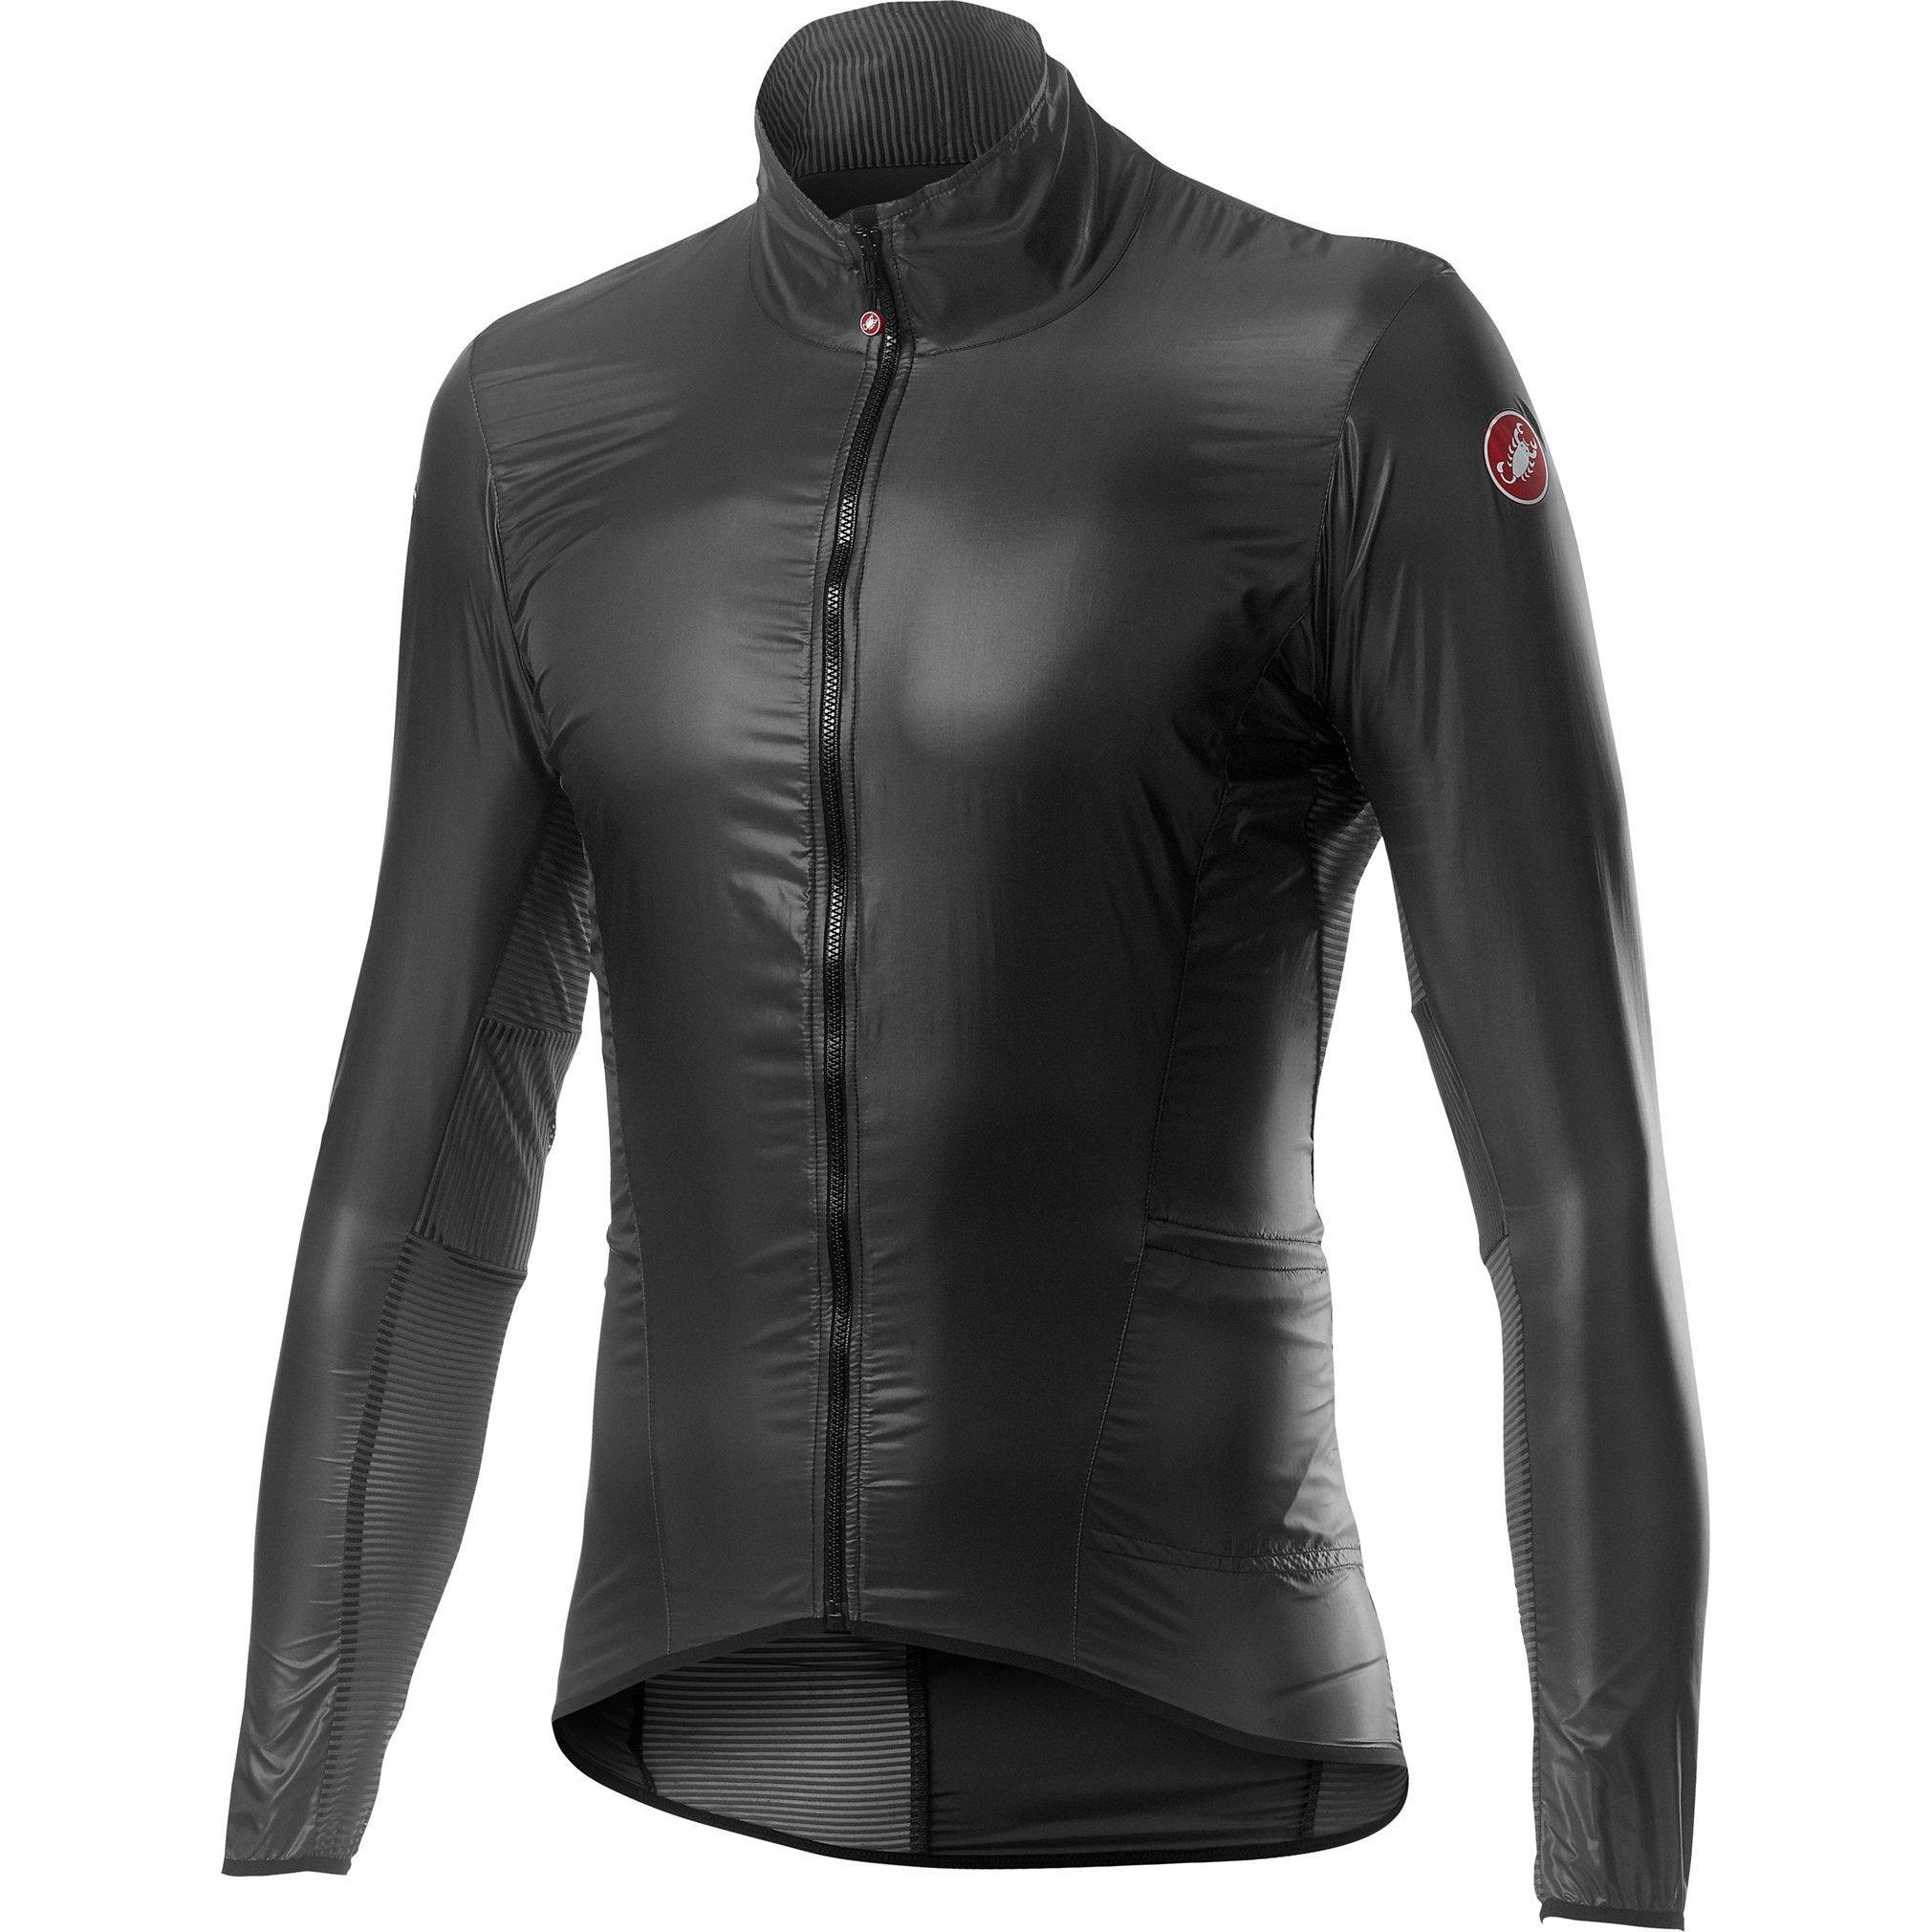 Castelli-Castelli Aria Shell Jacket-Dark Gray-S-CS200580302-saddleback-elite-performance-cycling